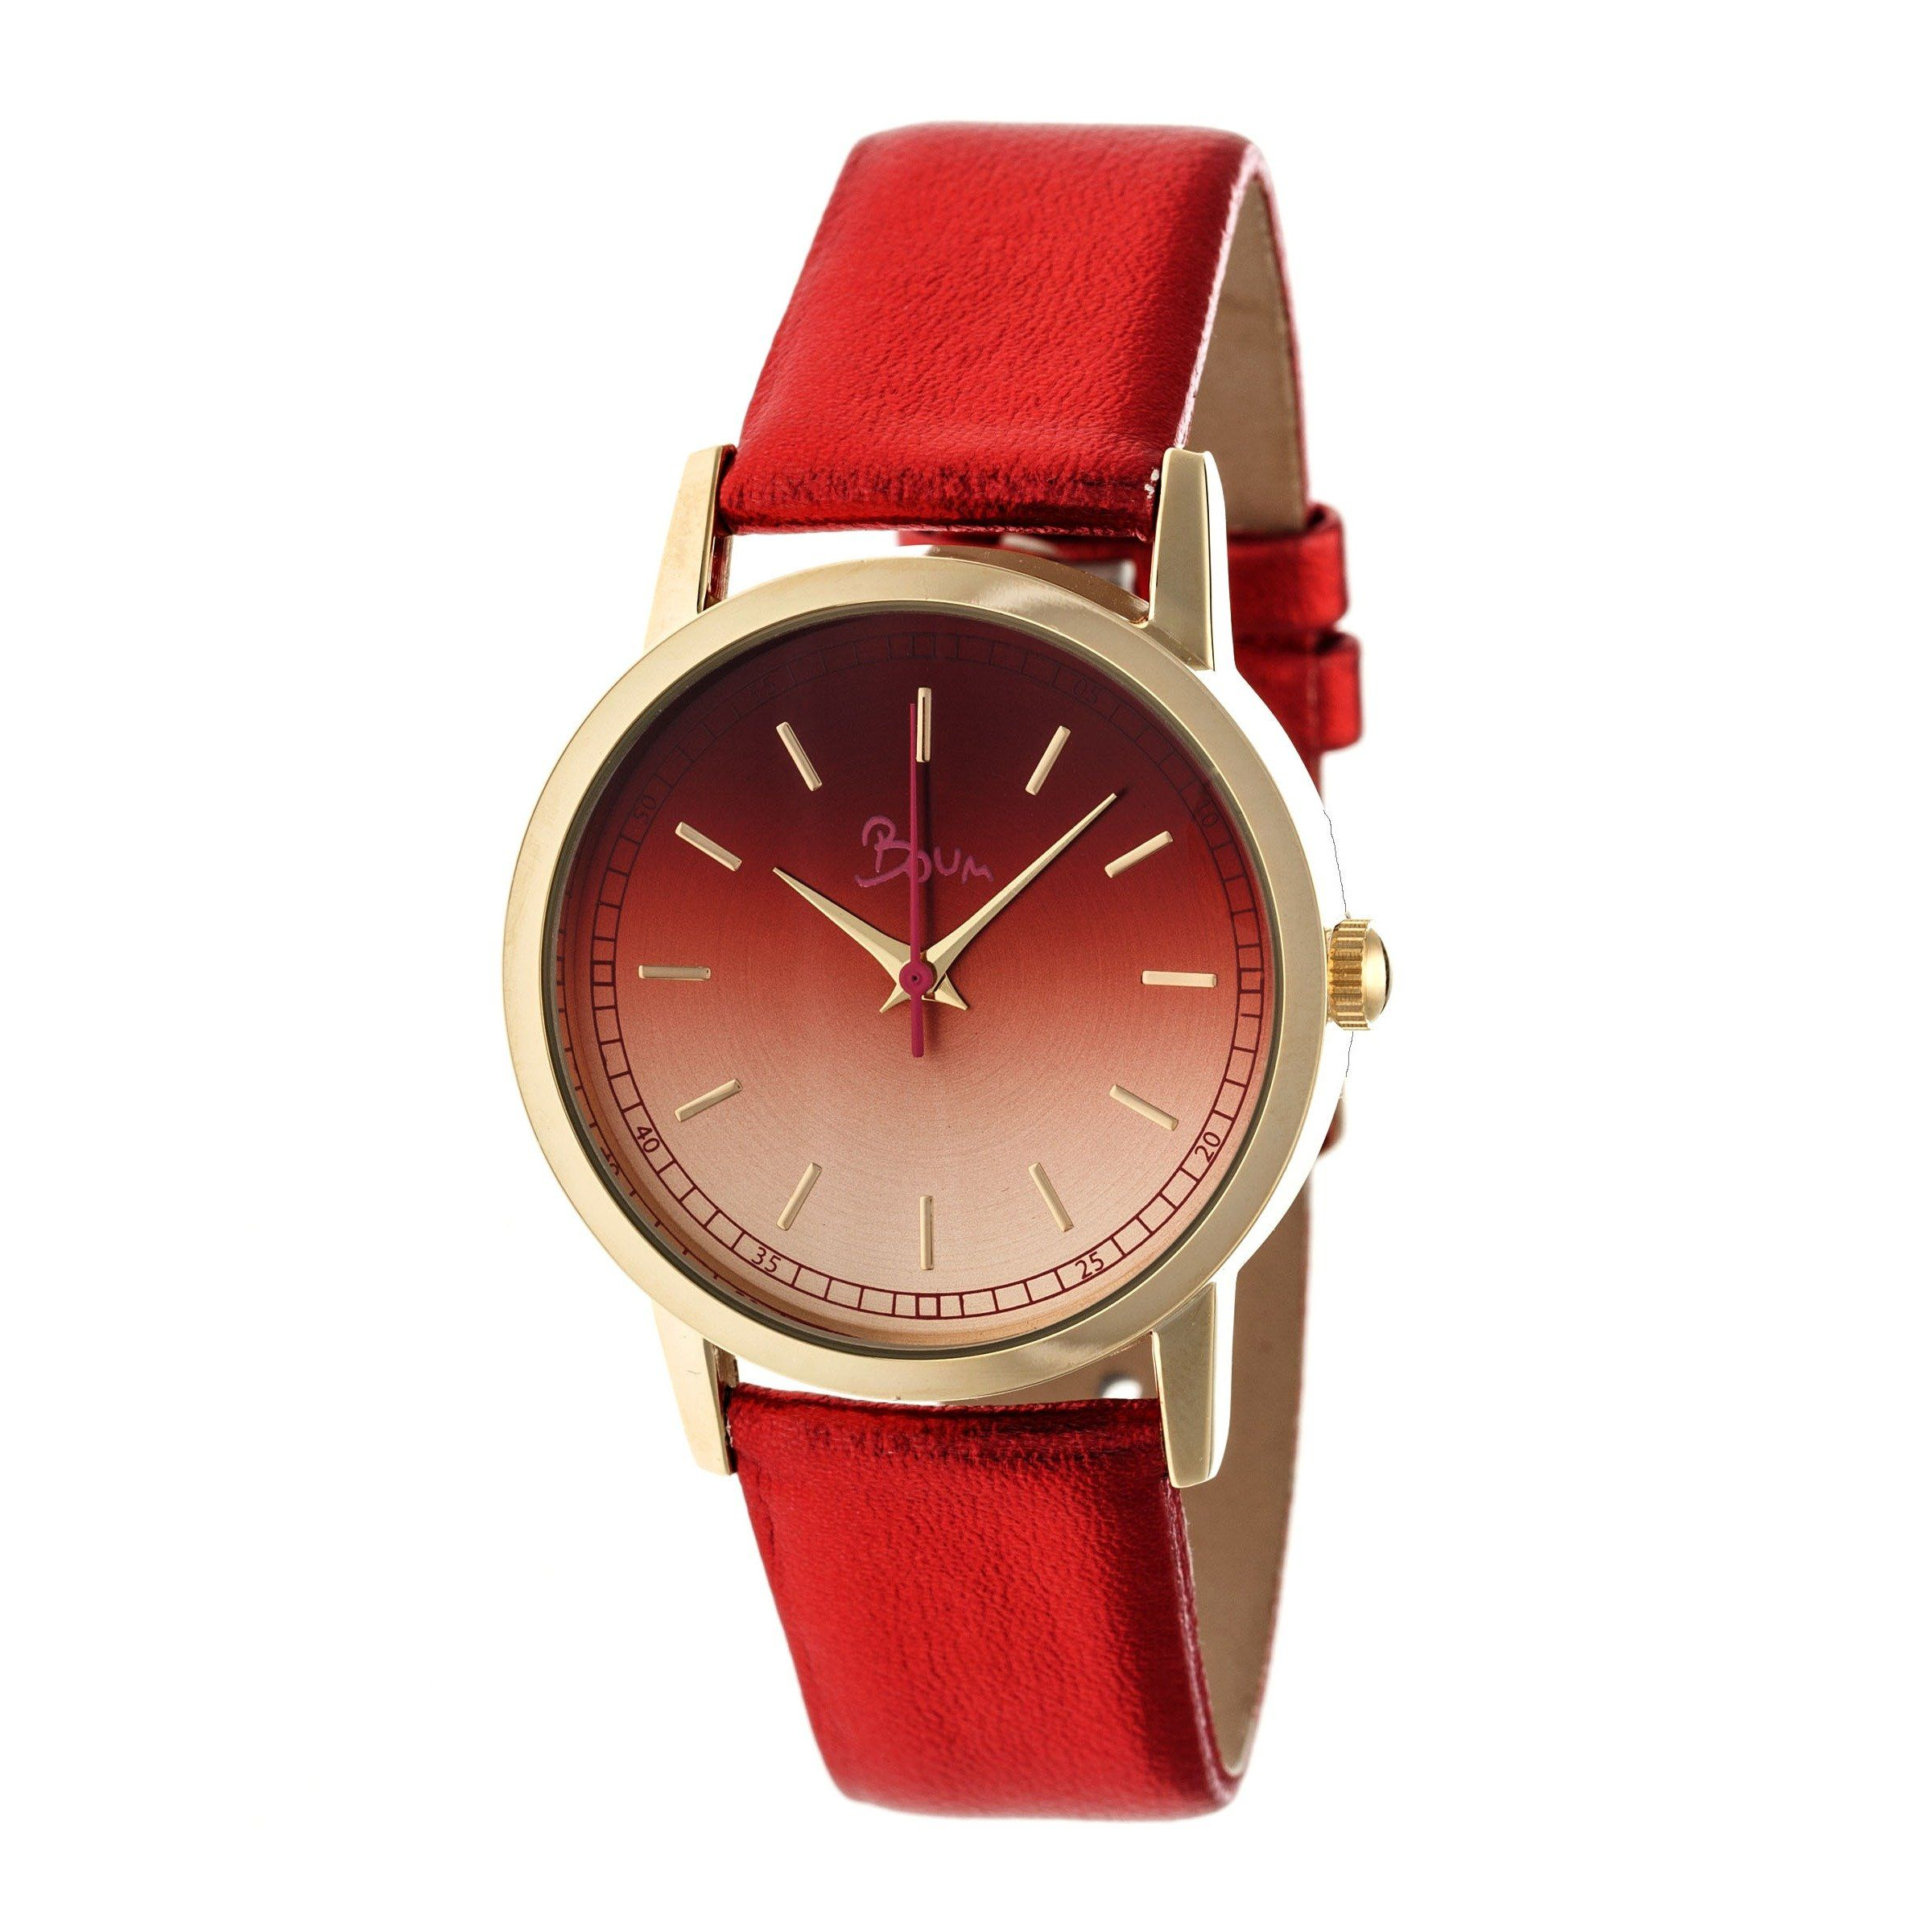 s watch elevated strap black leather silver classic is jewelry dress timex classics women this pin watches perfect red